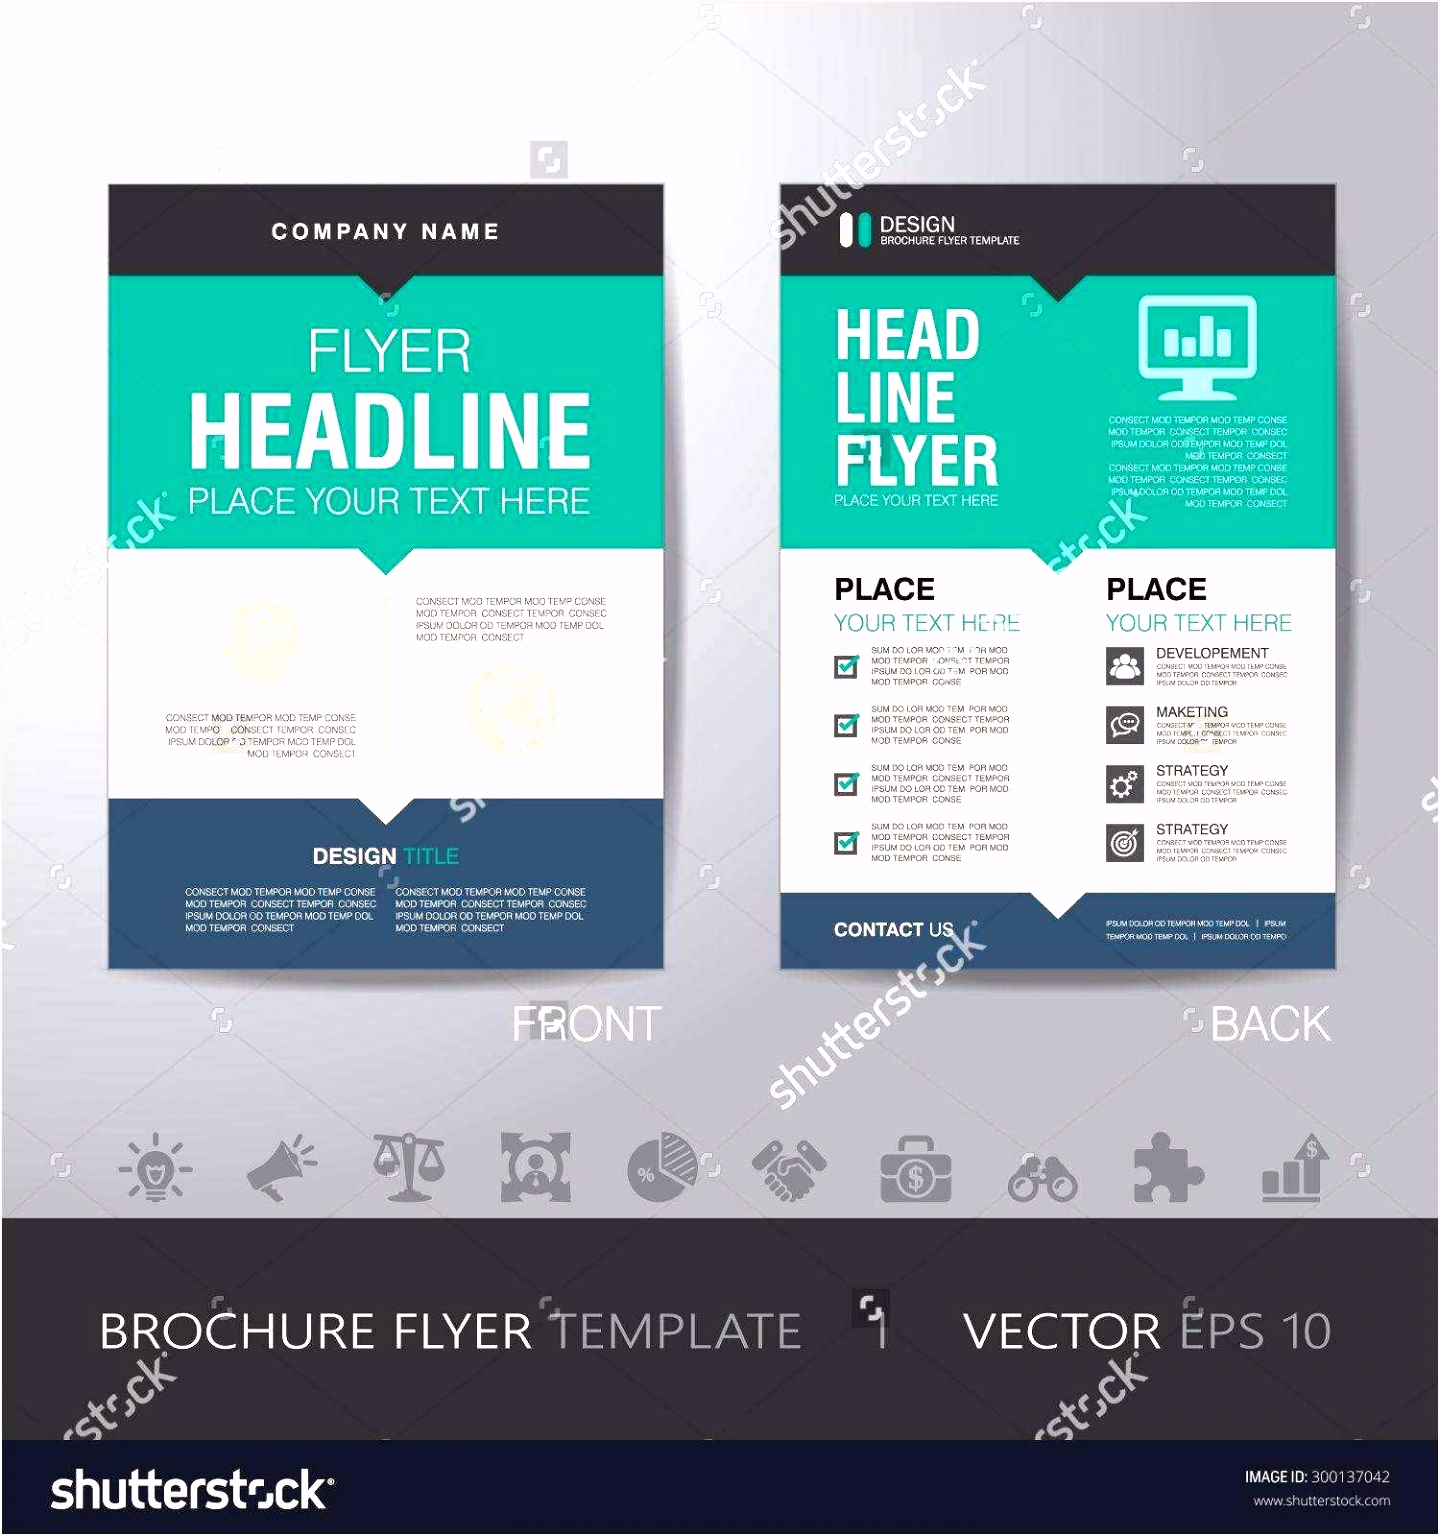 Monthly Newsletter Template Professional New Work Email Templates